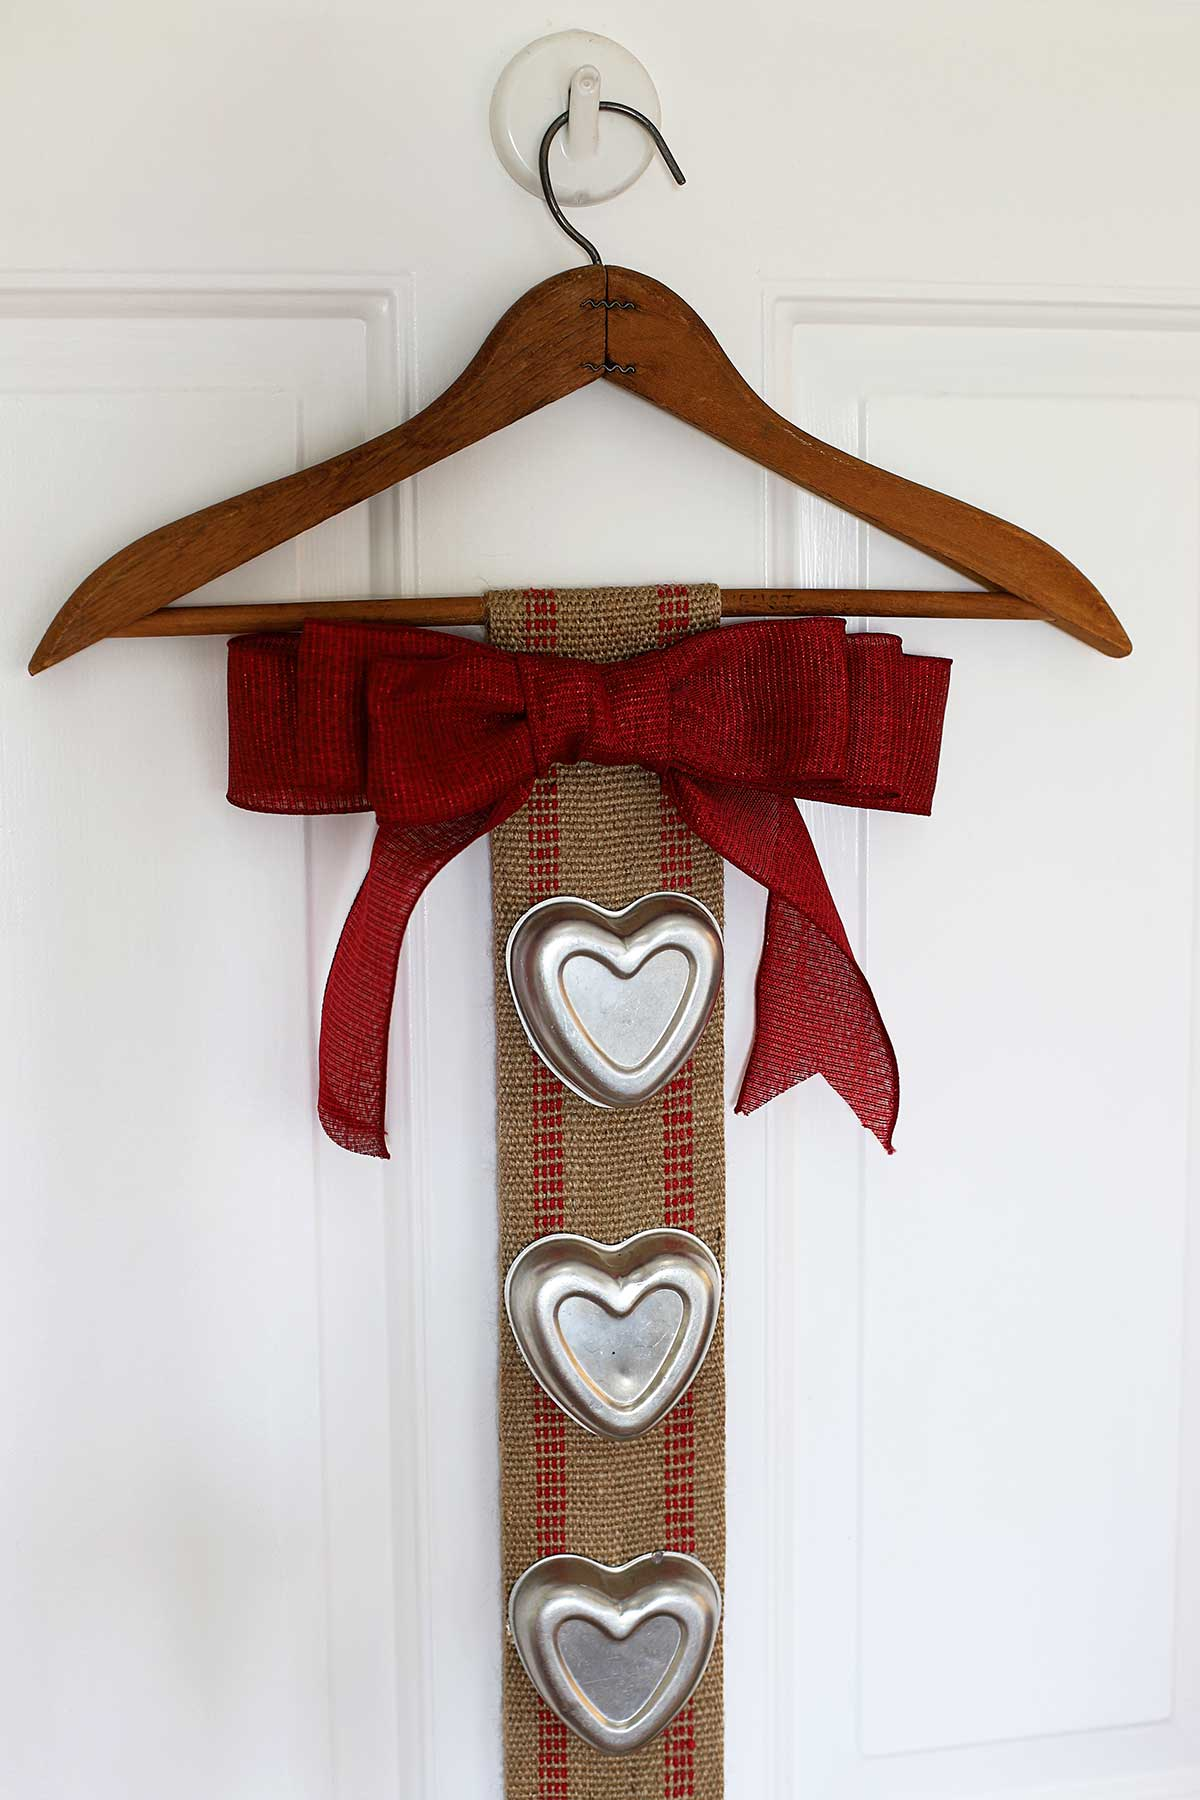 Upcycled Valentines Day banner using upholstery webbing and vintage tin heart jello molds